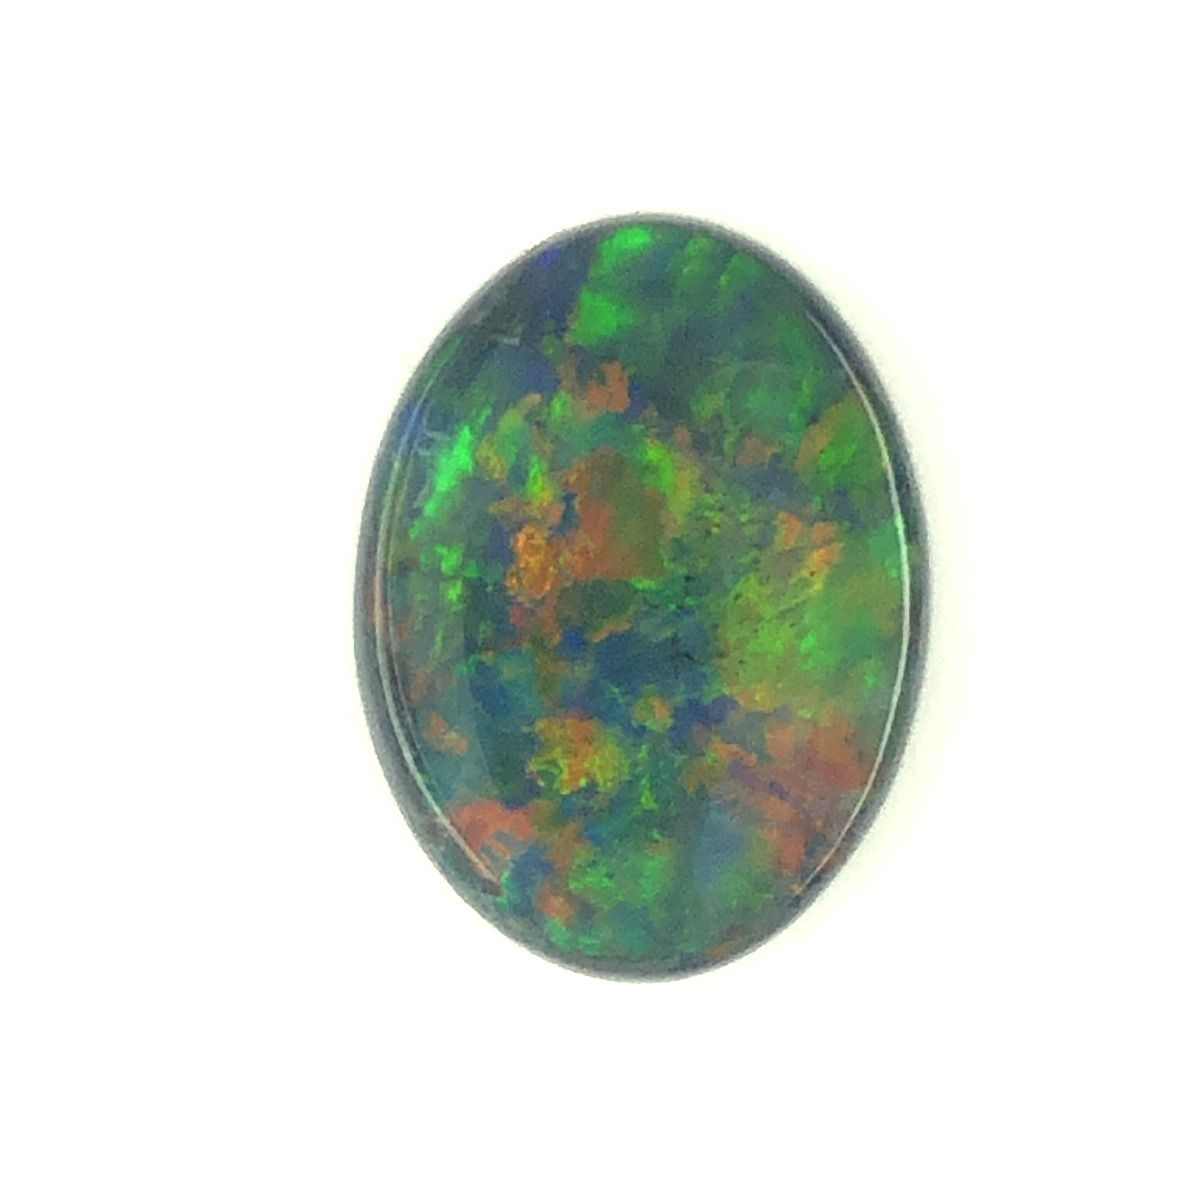 Solid Black Opal Stone 3.19ct